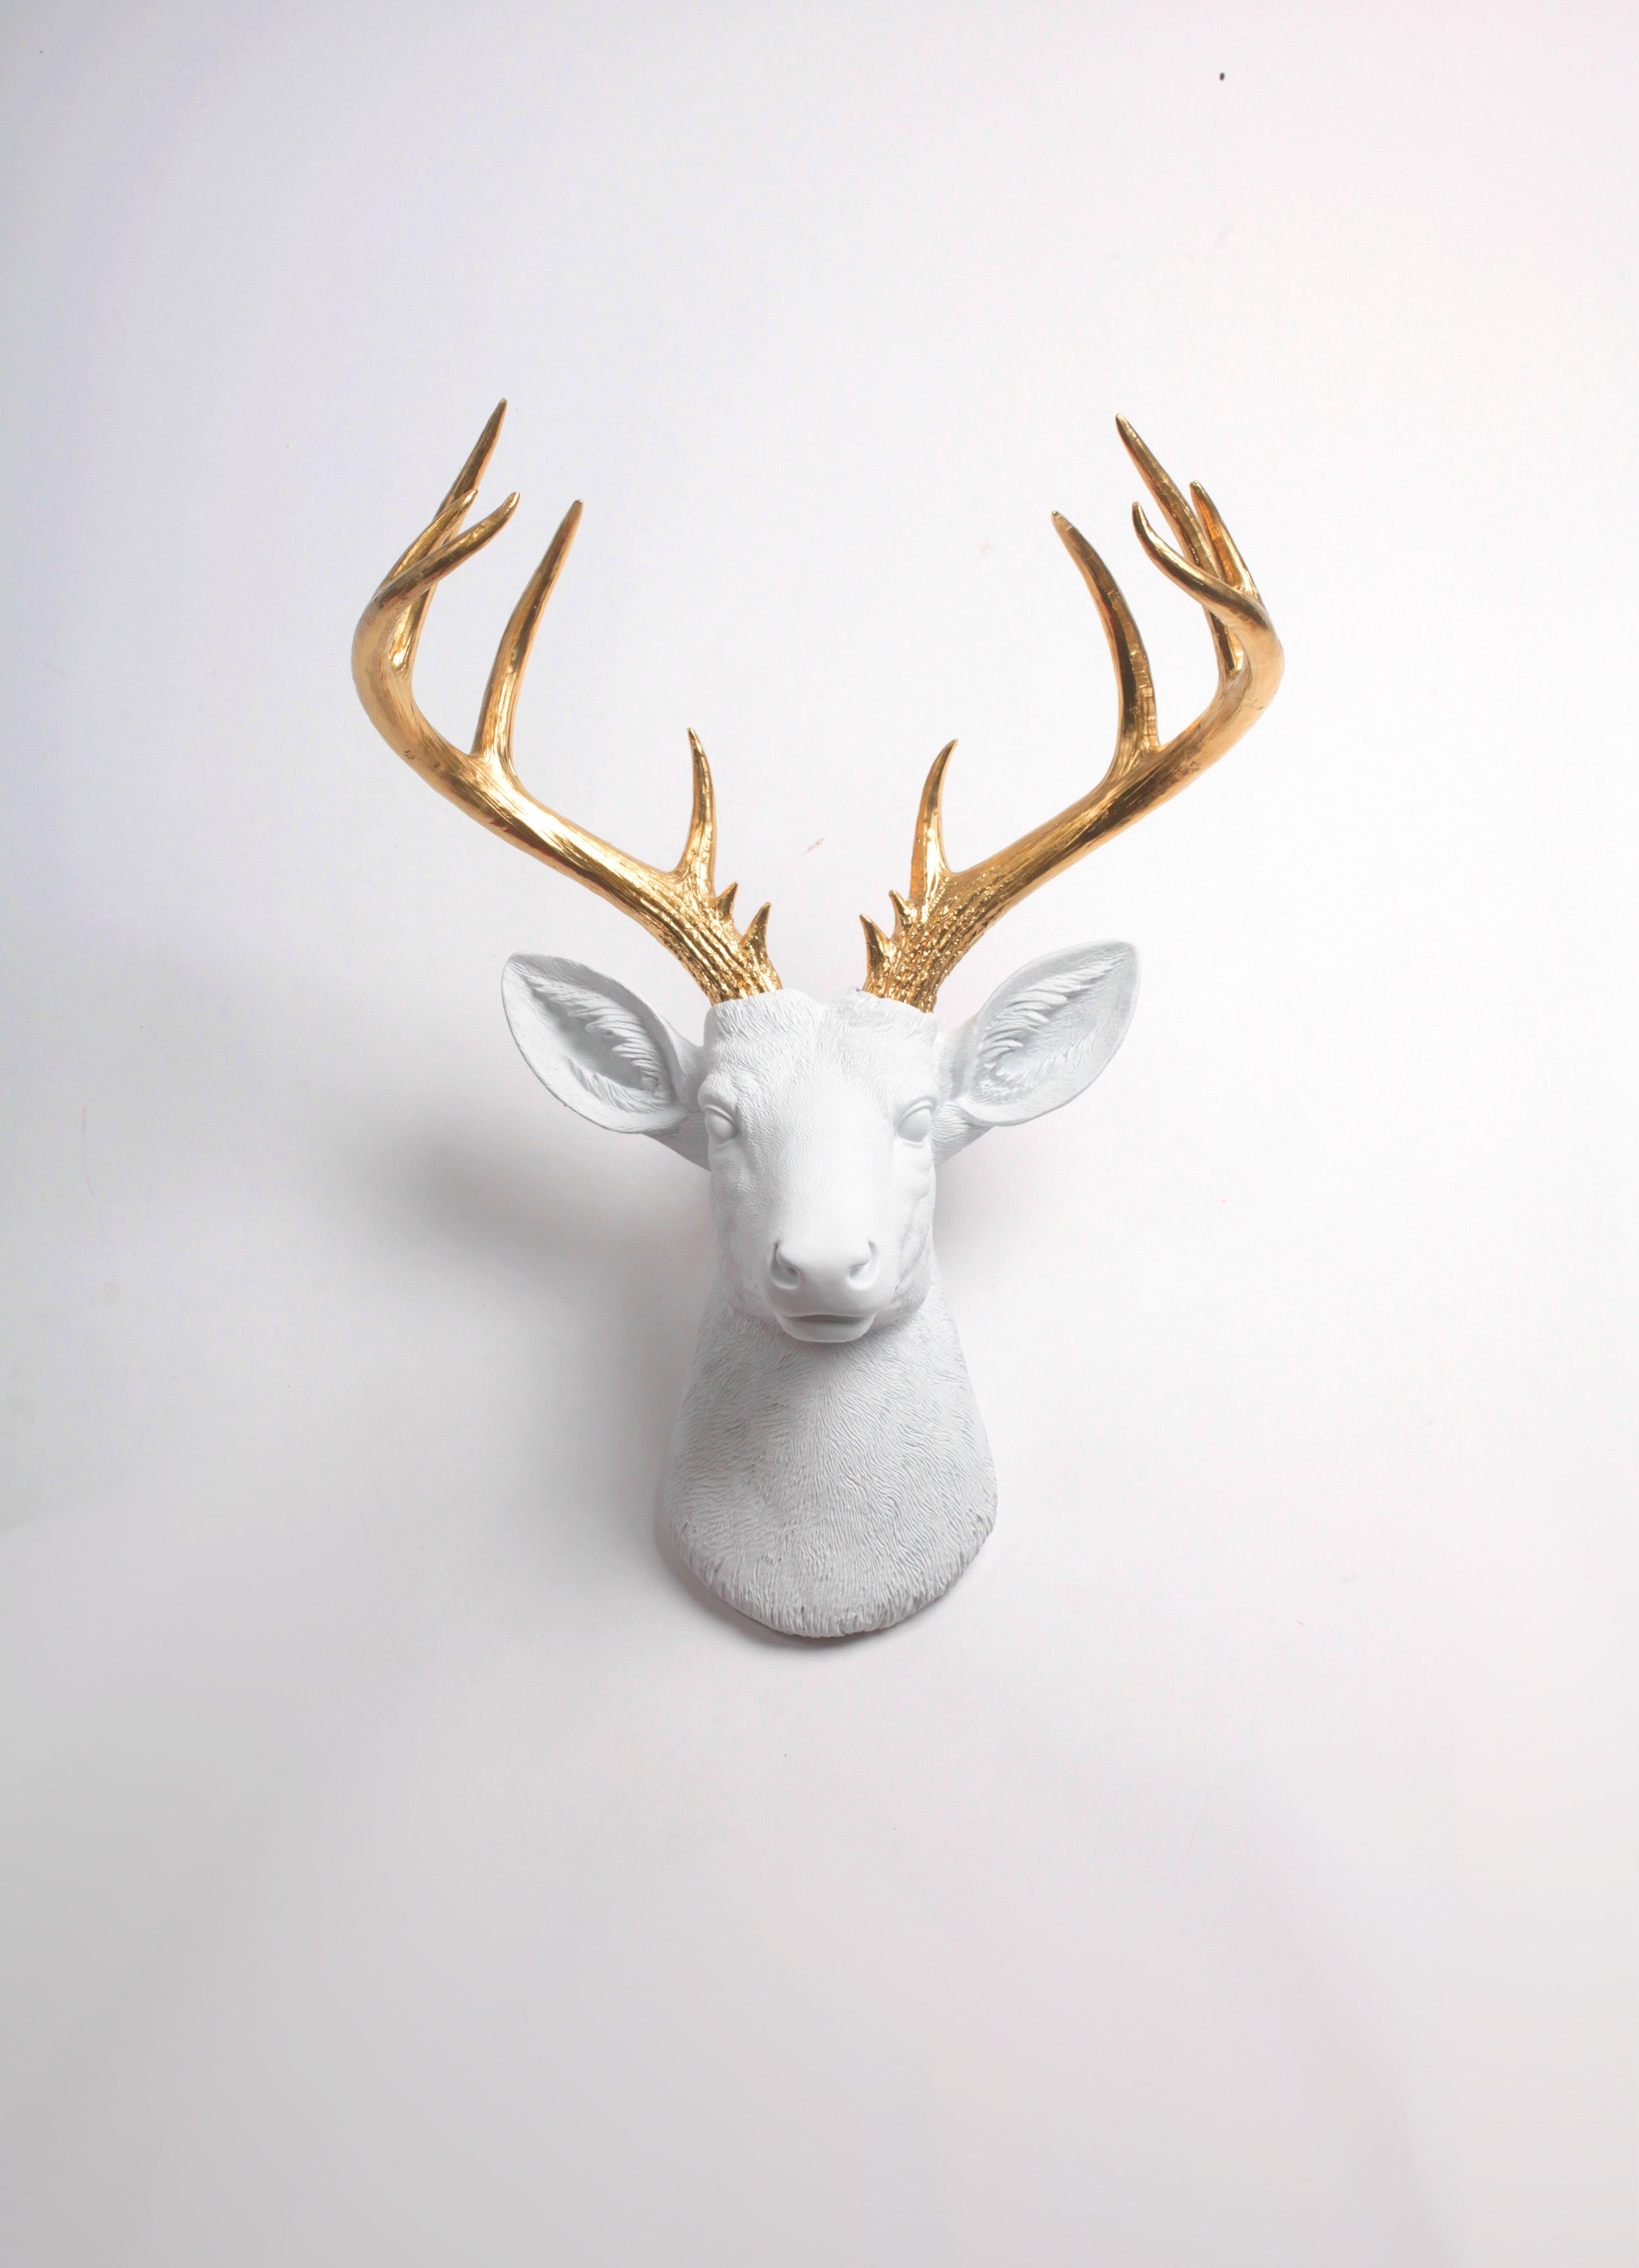 The XL Alfred | Faux Deer Head | Faux Taxidermy | White Resin W/ Gold